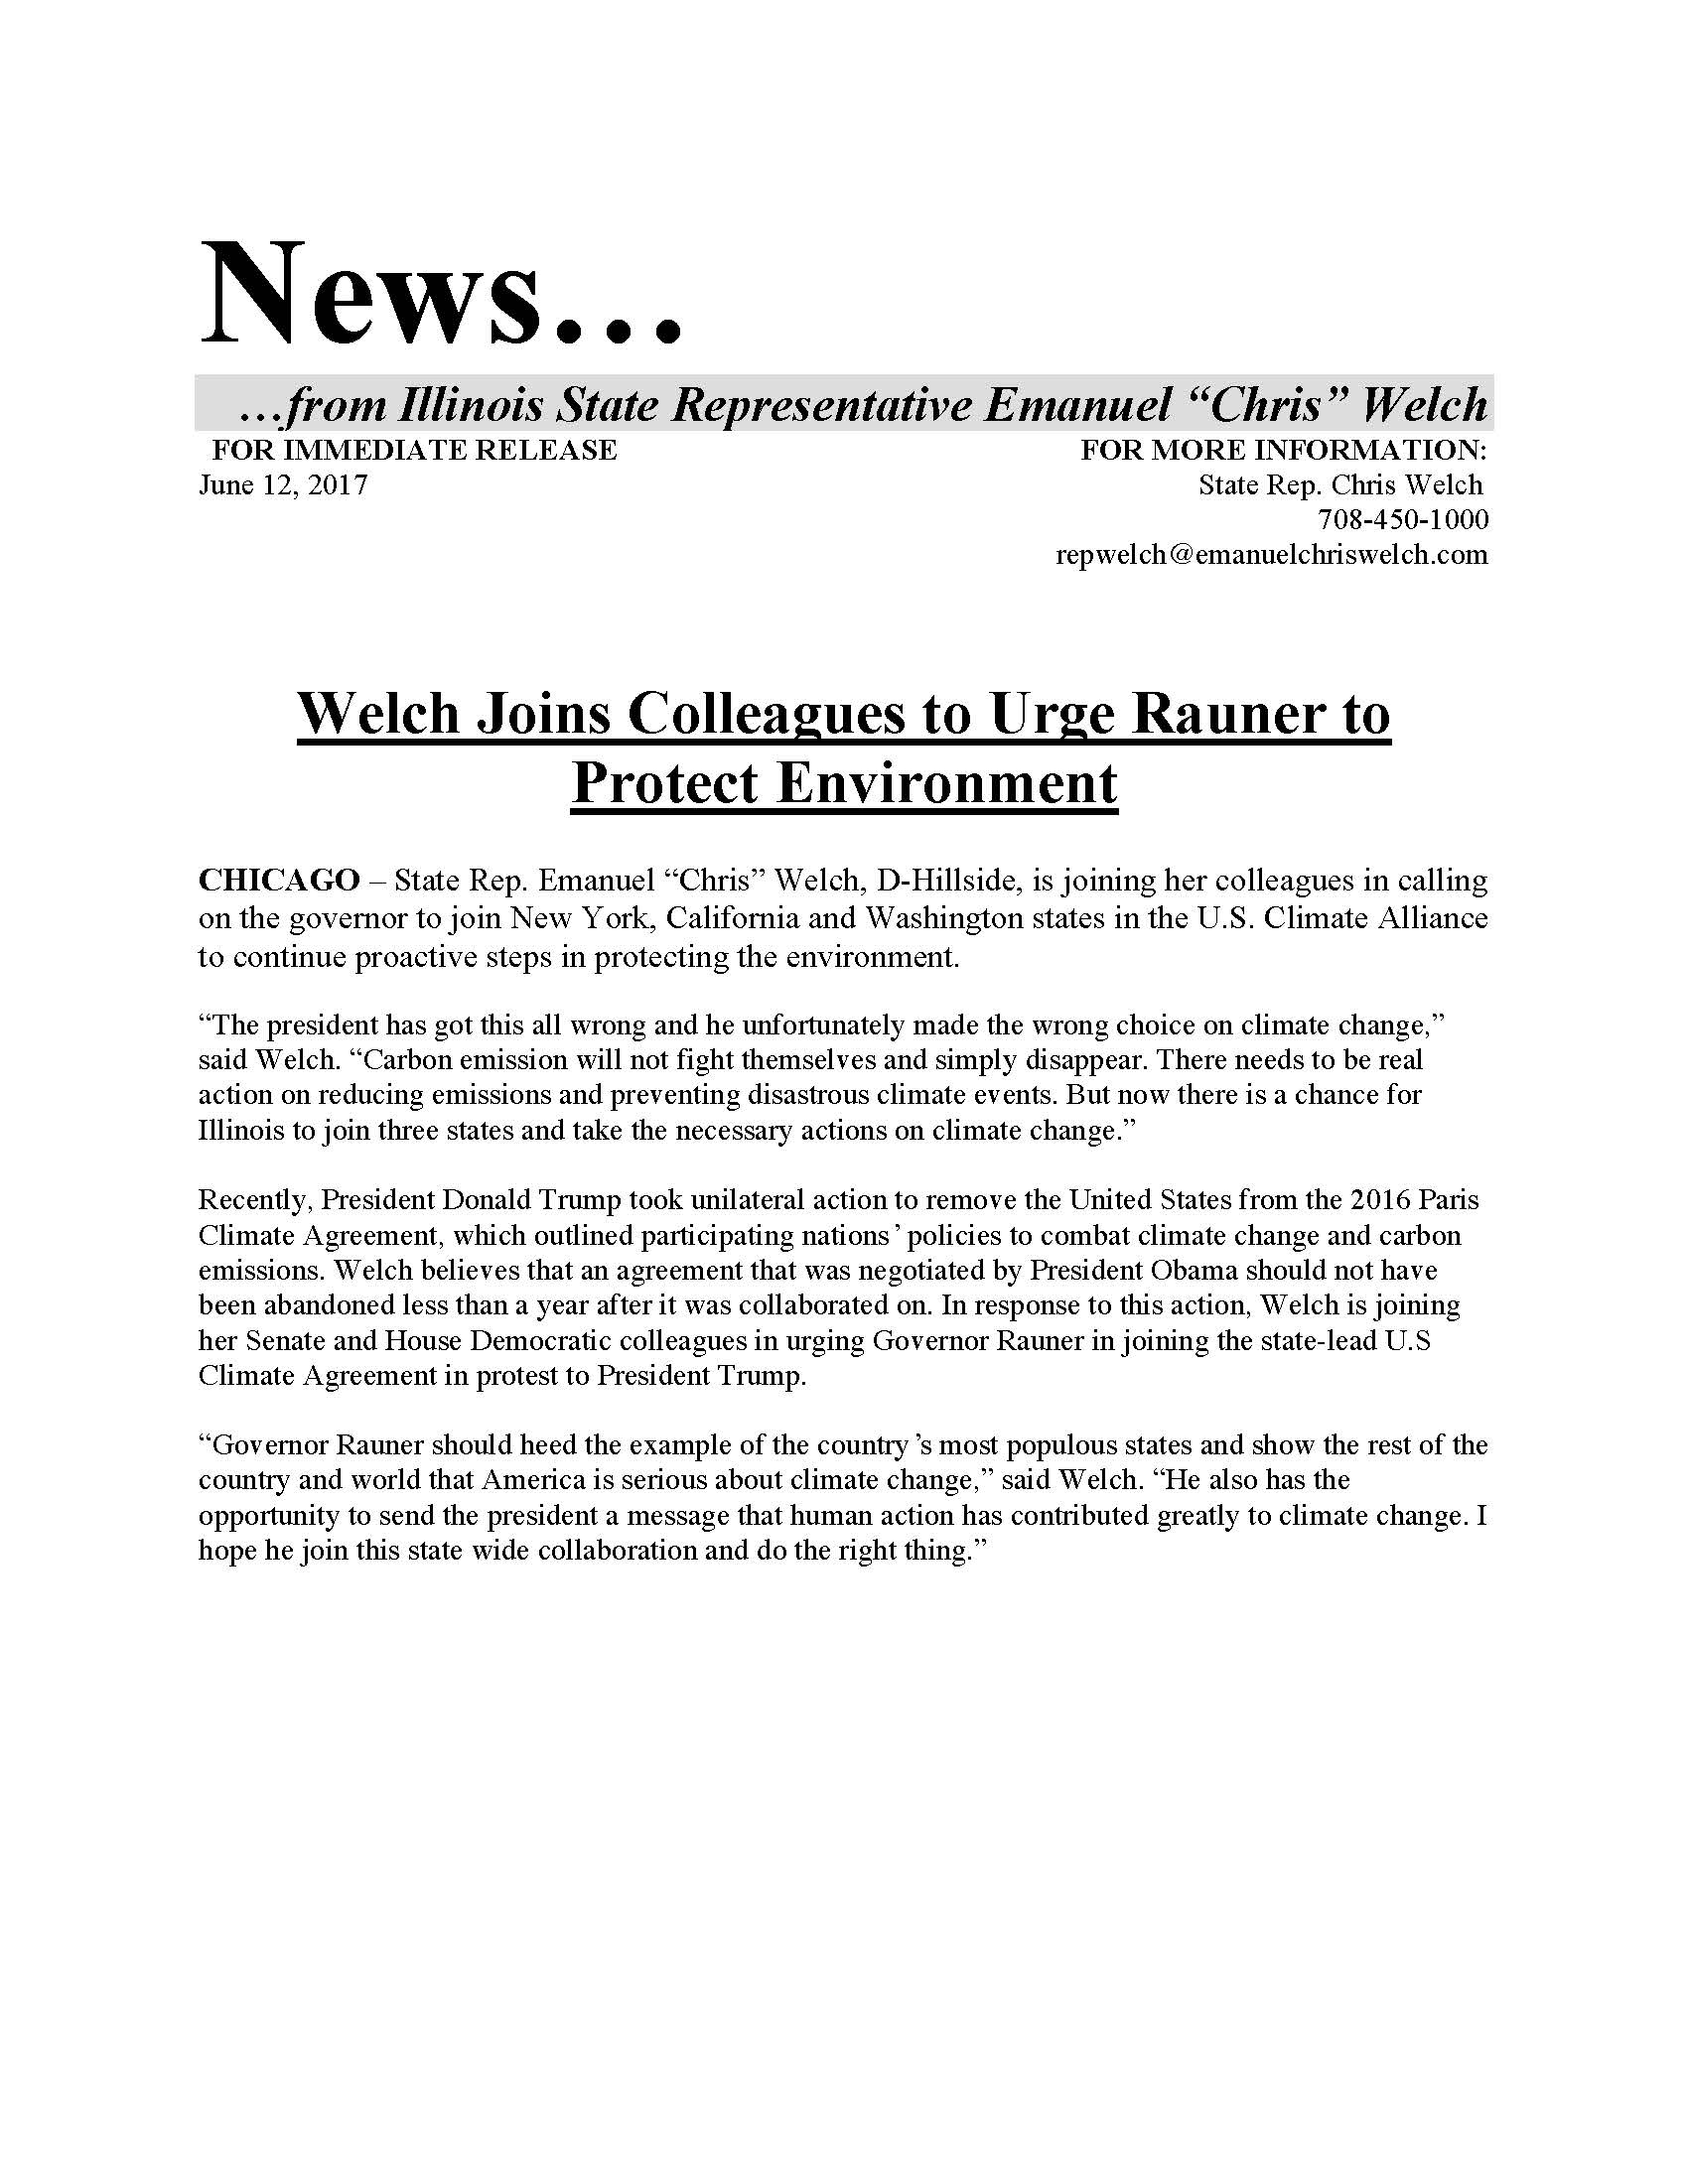 Welch Joins Colleagues to Urge Rauner to Protect Environment  (June 12, 2017)